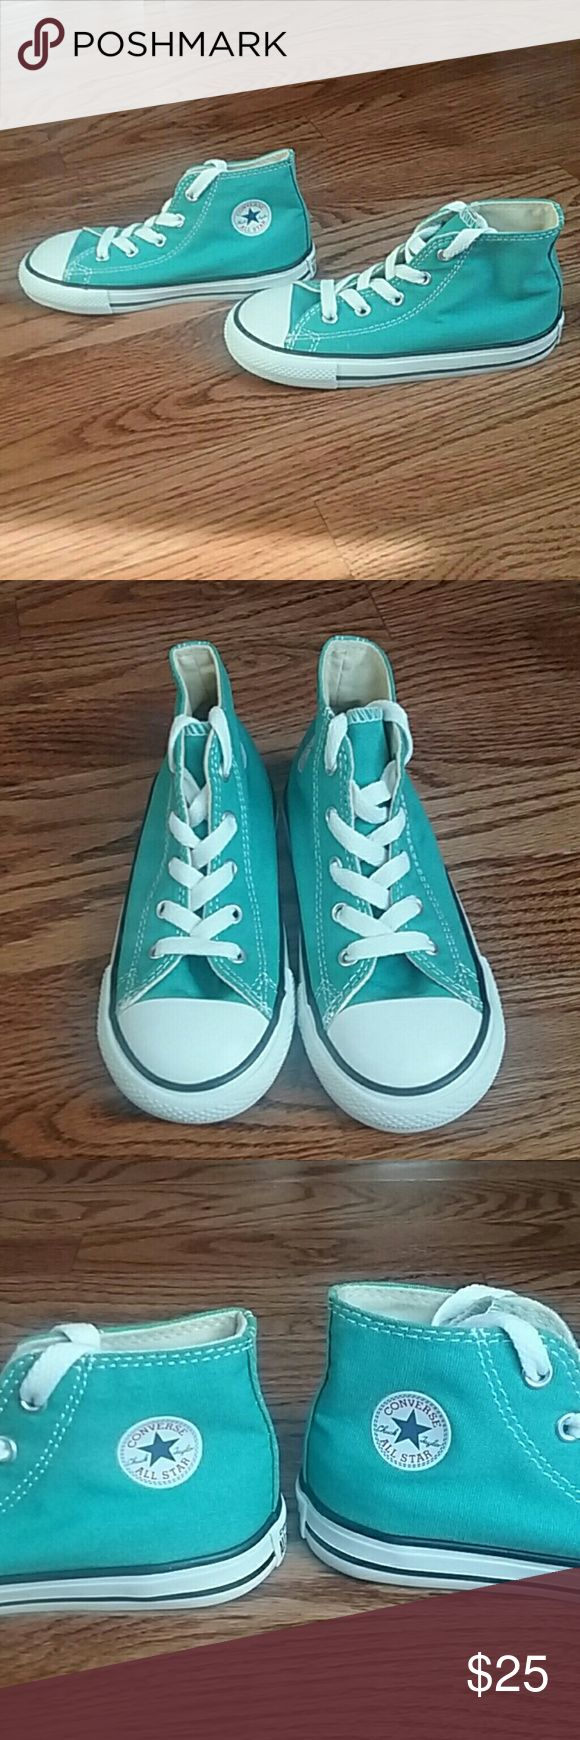 NEW Converse All star teal toddler size 10 Brand New without tags. Toddler size 10 converse all stars sneakers for boys or girls in an amazing teal aqua blue color! Lace up ties. Converse Shoes Sneakers